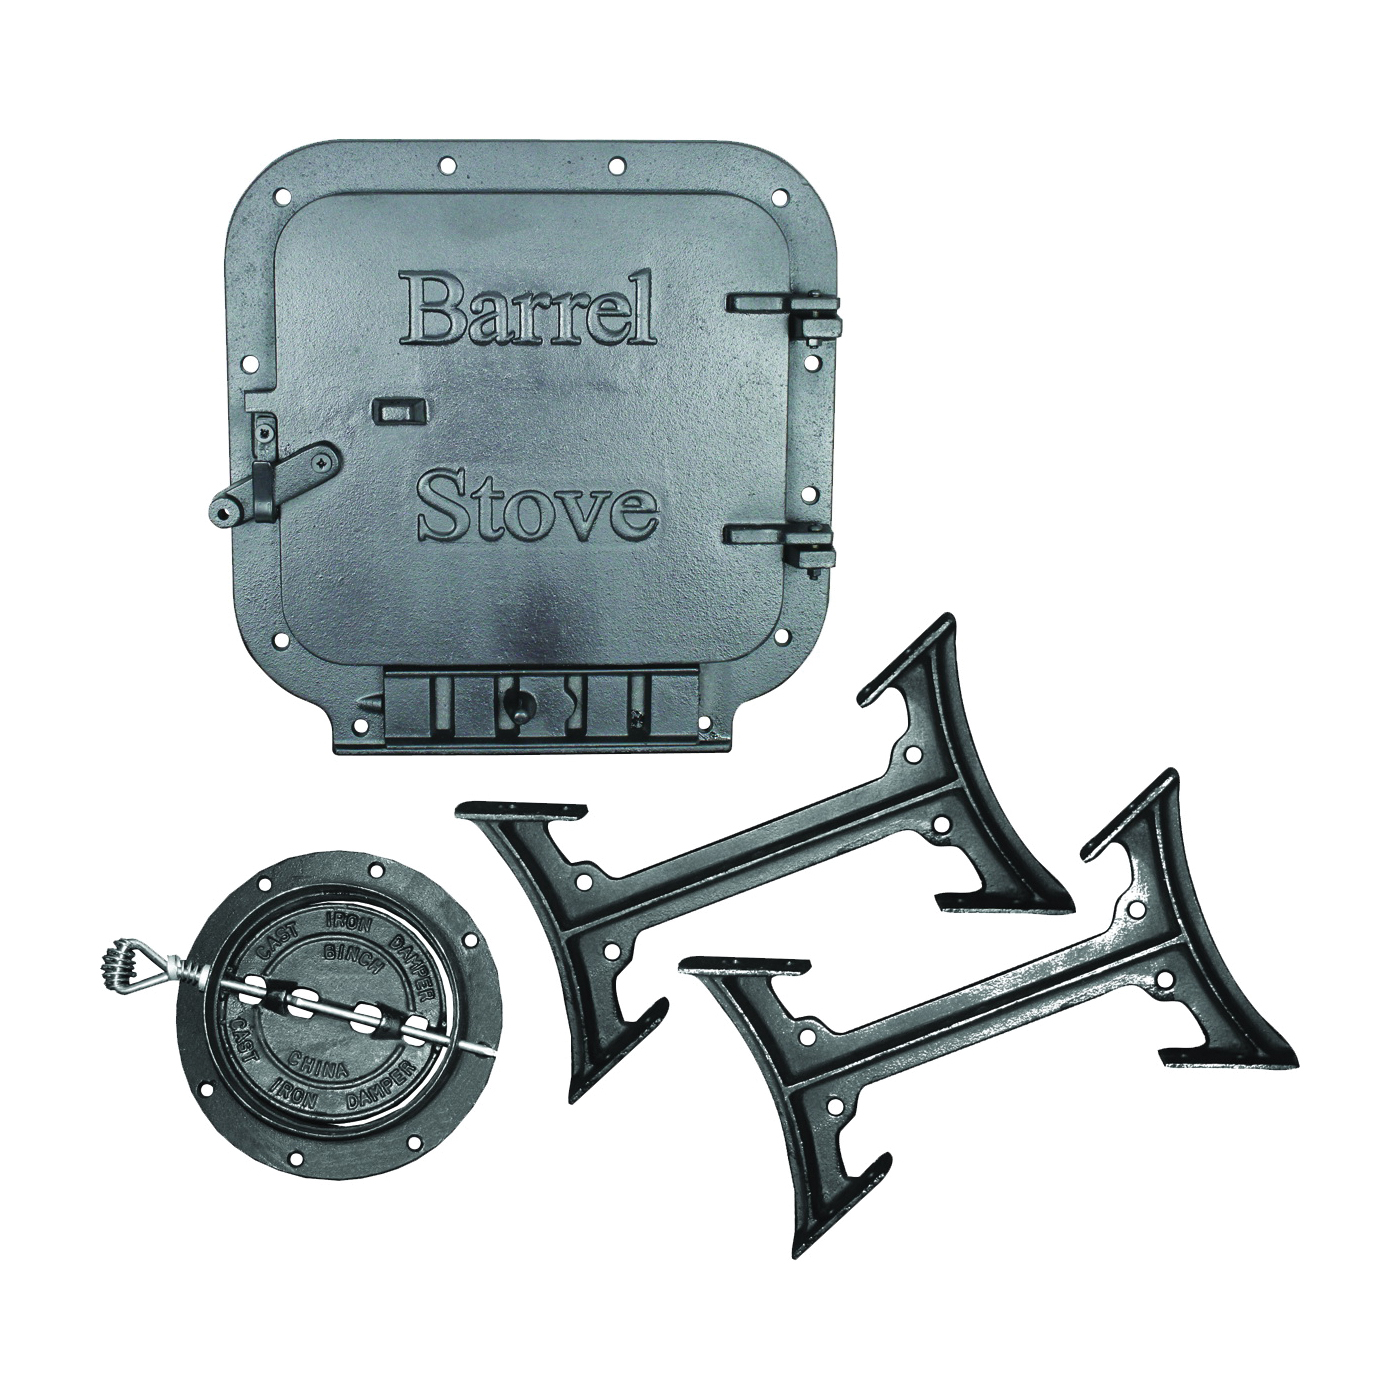 Picture of US STOVE BK100E/BSK1000 Barrel Stove Kit, Iron, For: 30 or 55 gal Barrel Drums, 2-Piece